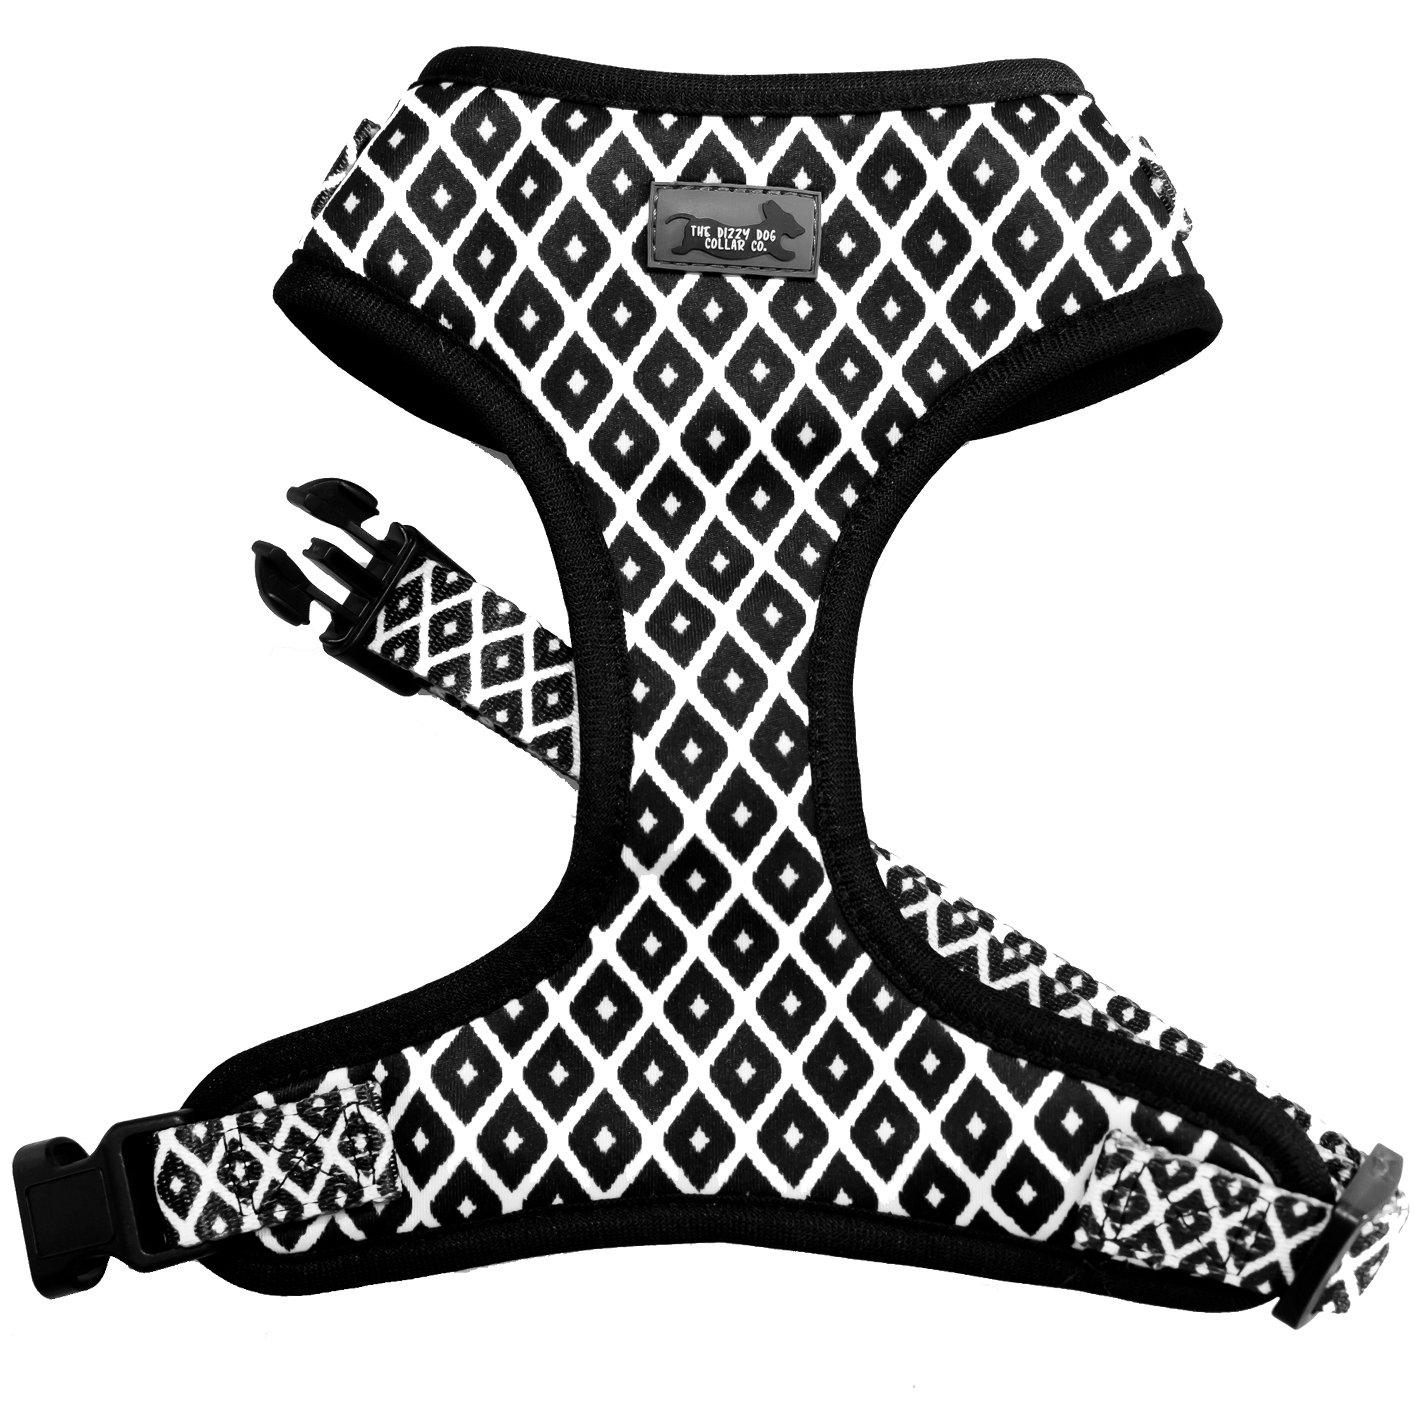 black and white dog harness, dog harnesses, classic dog harness with adjustable neck